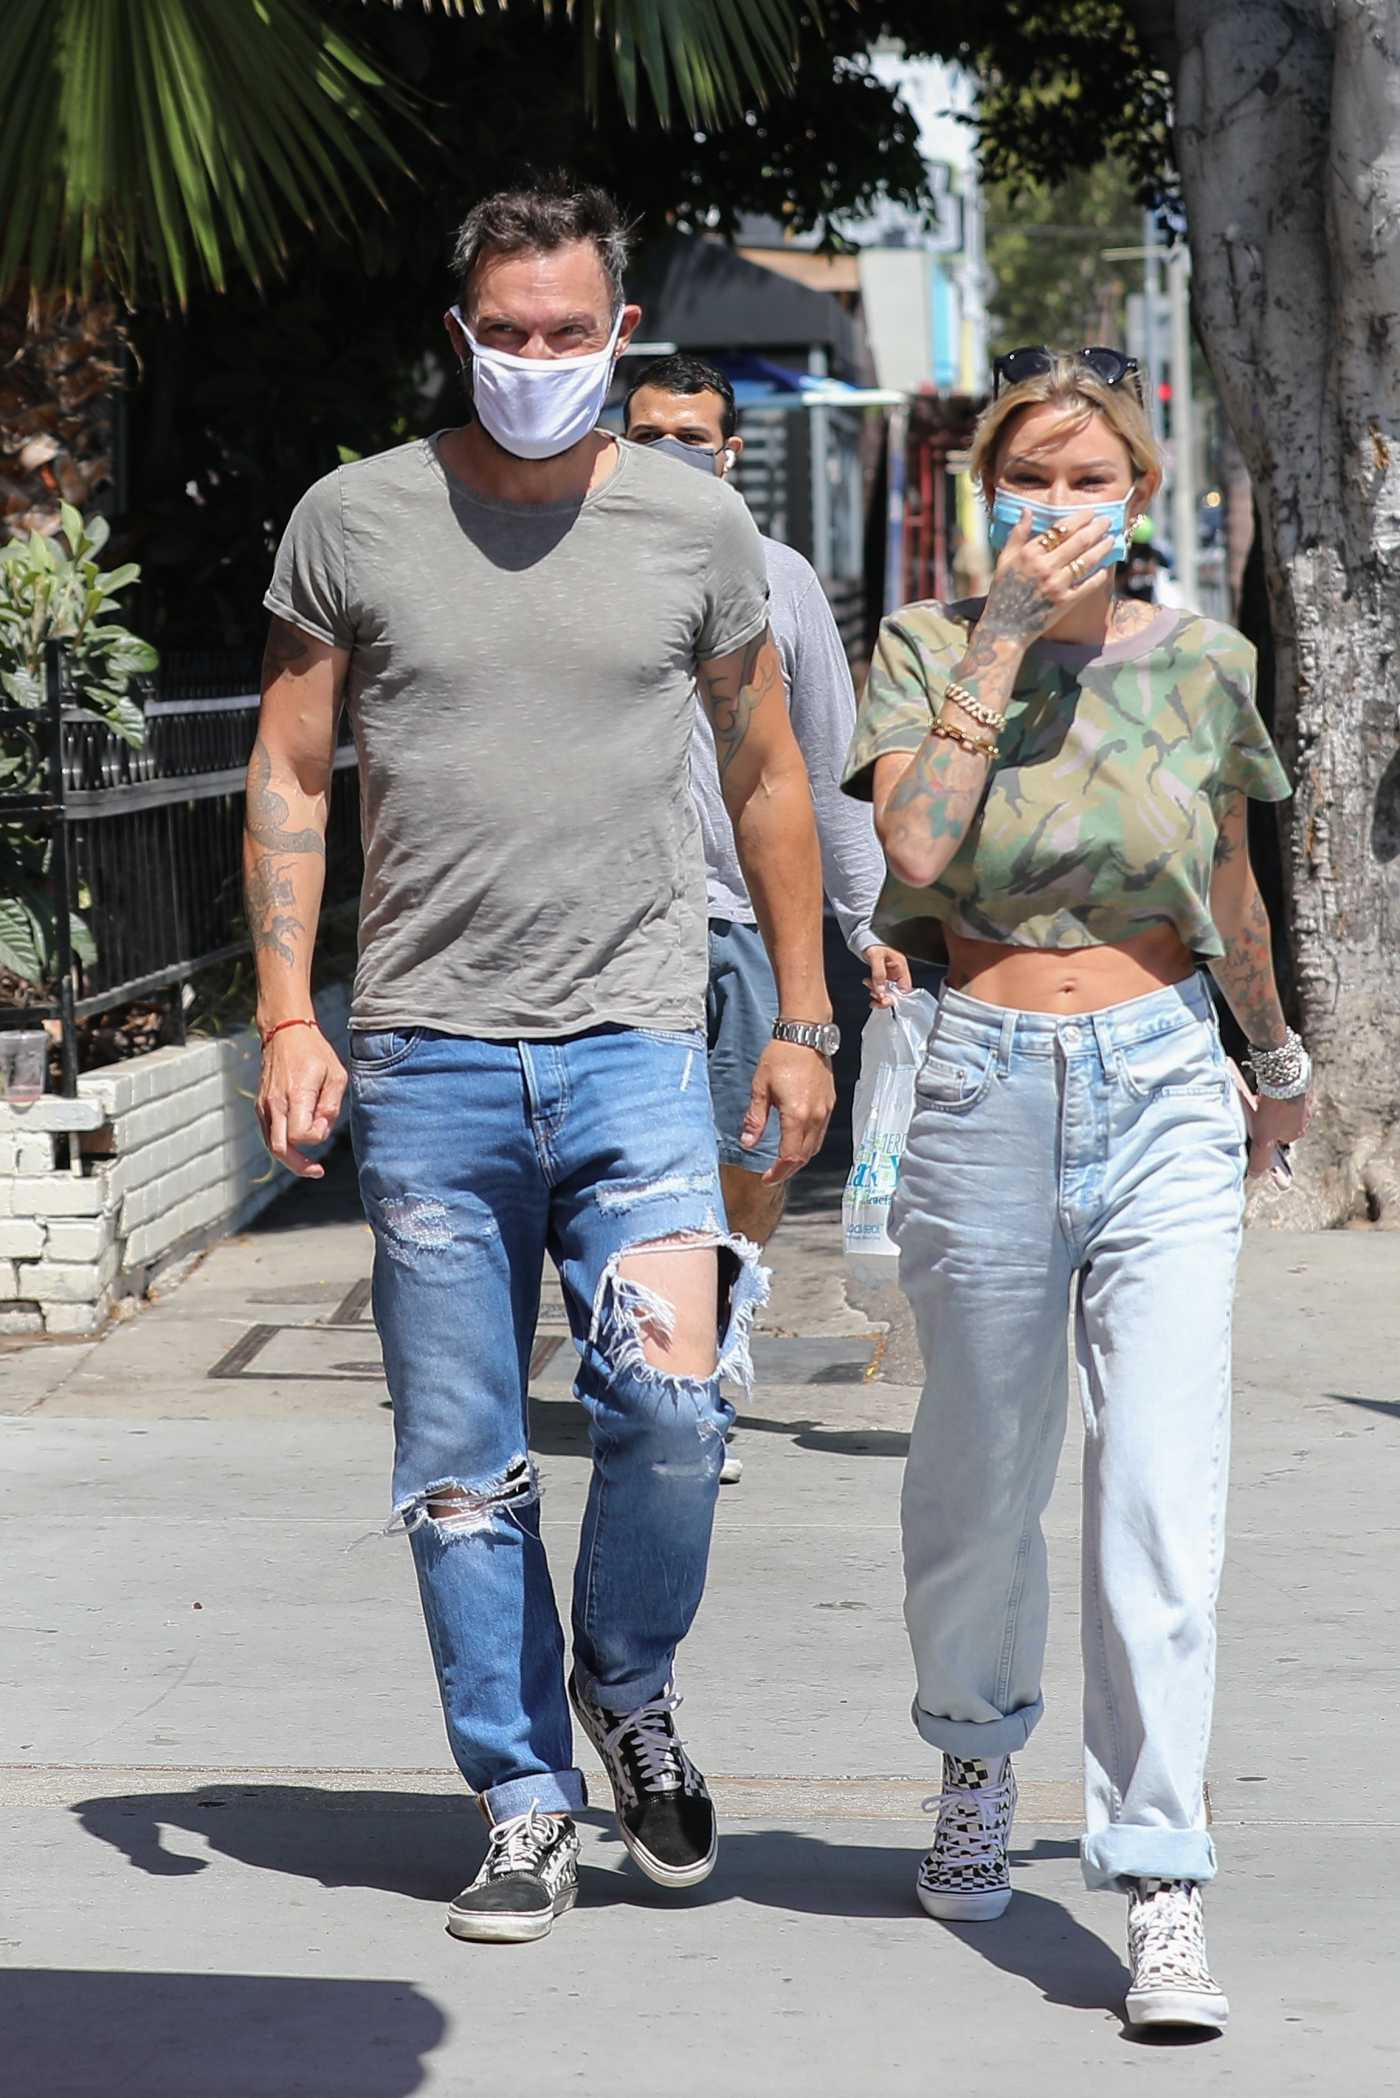 Brian Austin Green in a Gray Tee Goes for Lunch Out with Tina Louise at Sugar Taco Restaurant in Los Angeles 07/29/2020